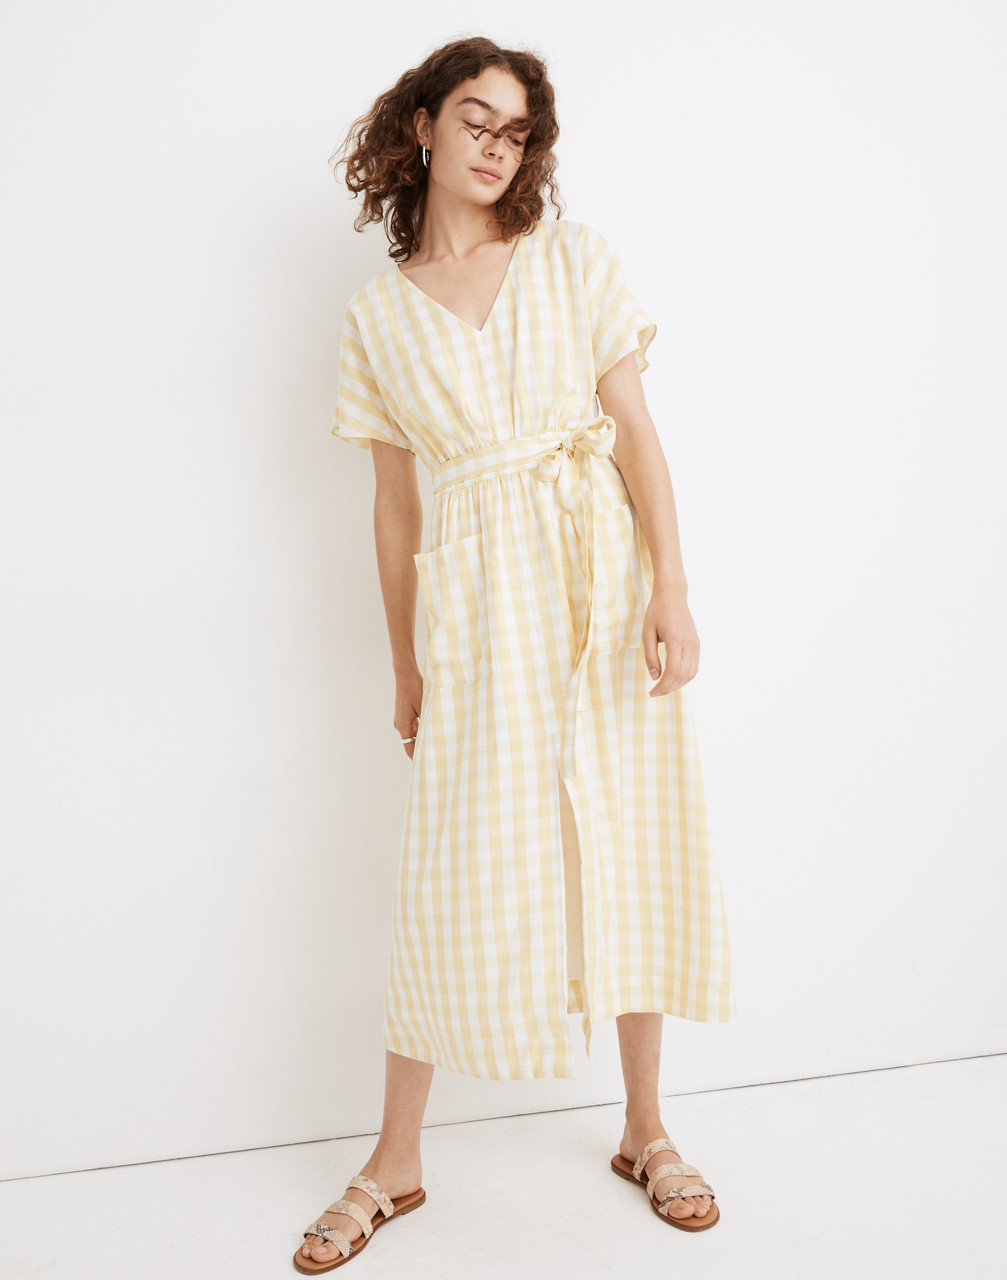 Cottagecore Clothing, Soft Aesthetic Dolman-Sleeve Tie-Waist Midi Dress in Gingham Check $59.99 AT vintagedancer.com